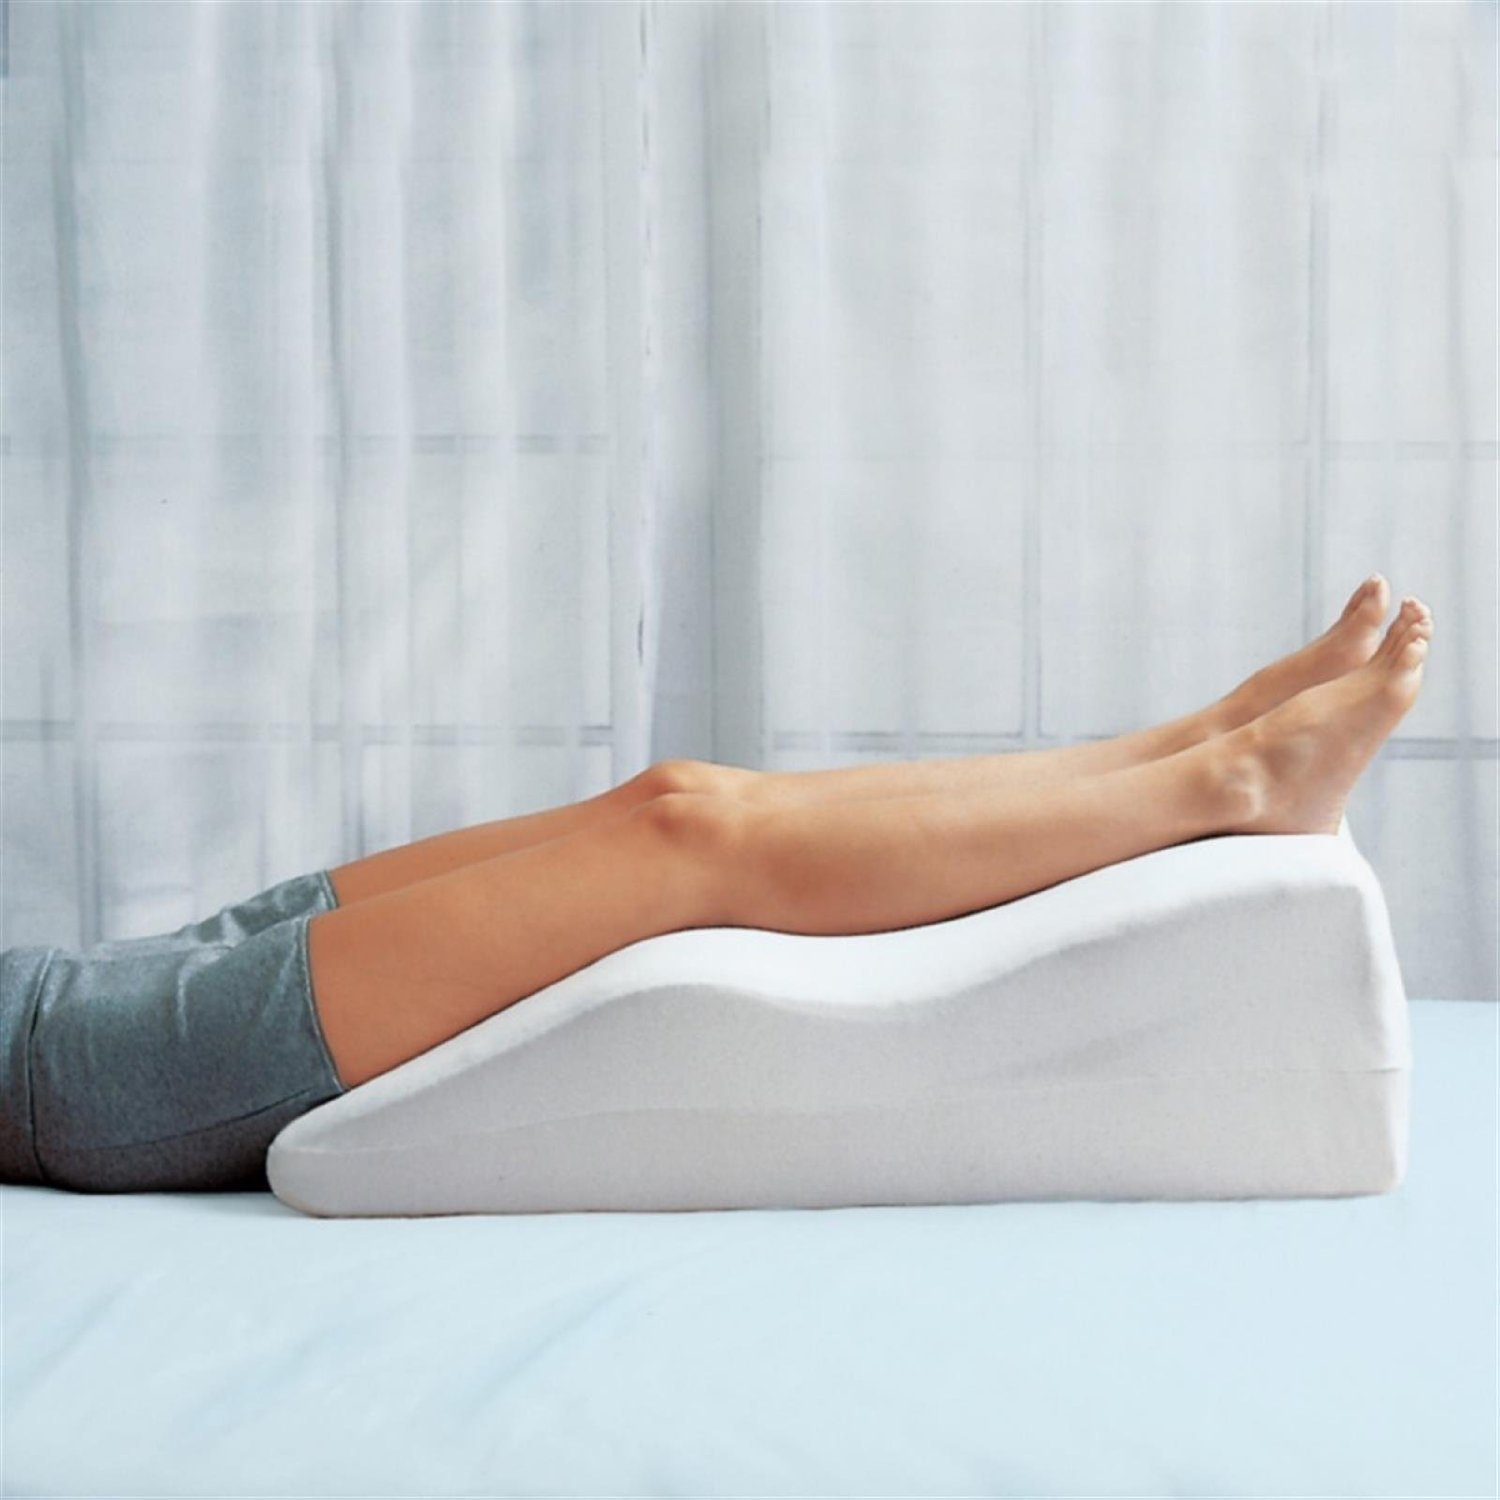 Leg Elevation Pillow Amazon.com Foam Leg Pillow